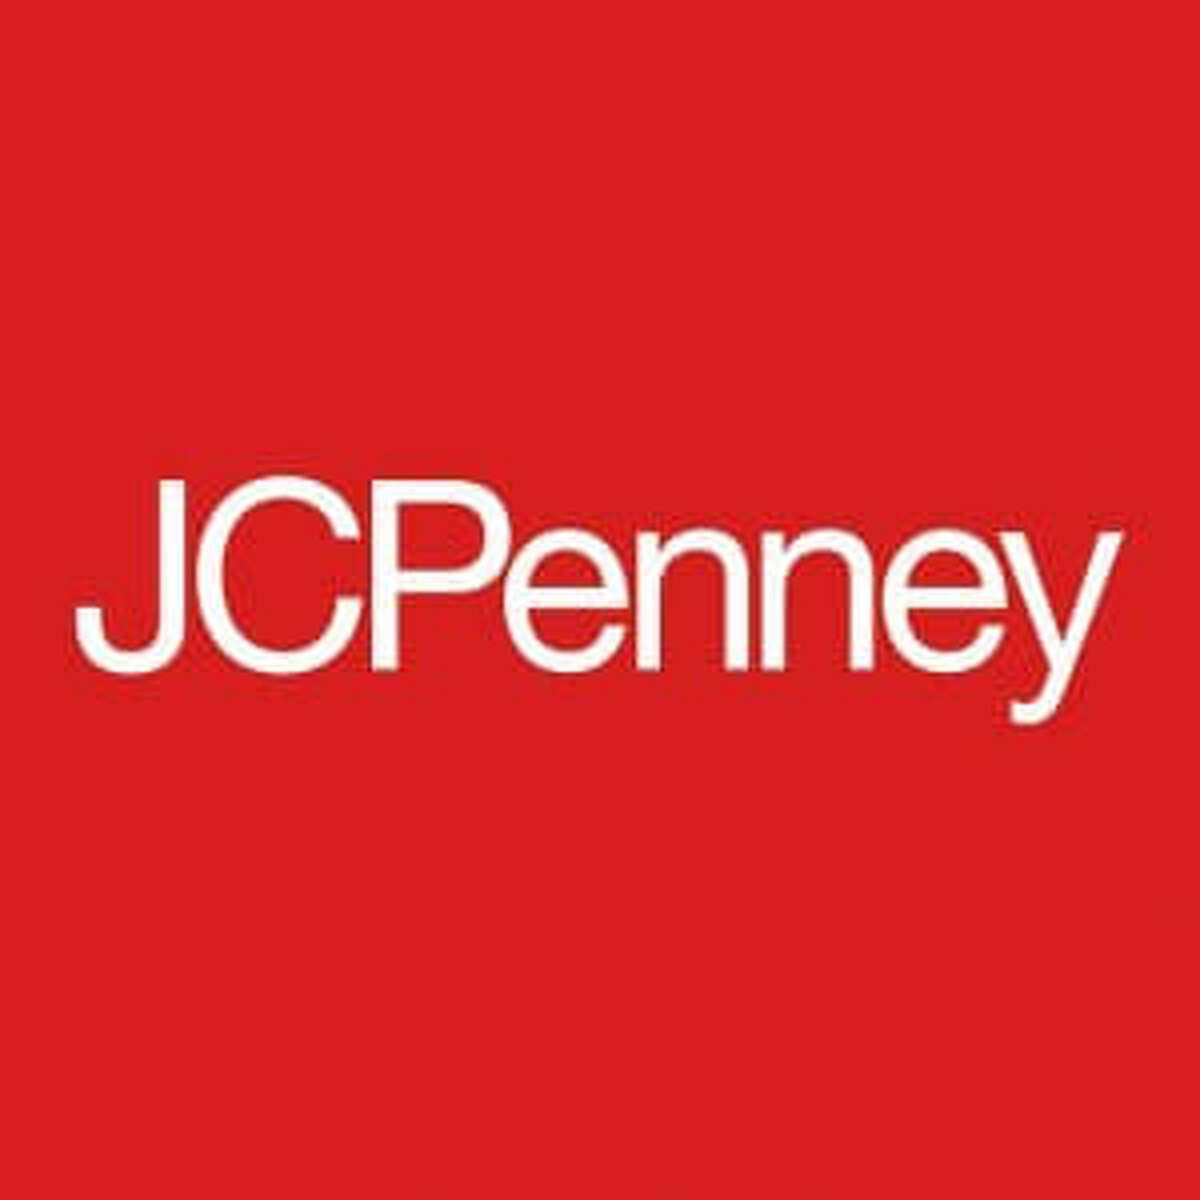 JCPenney announced 13 store closures, including the Big Rapids location, on Monday.